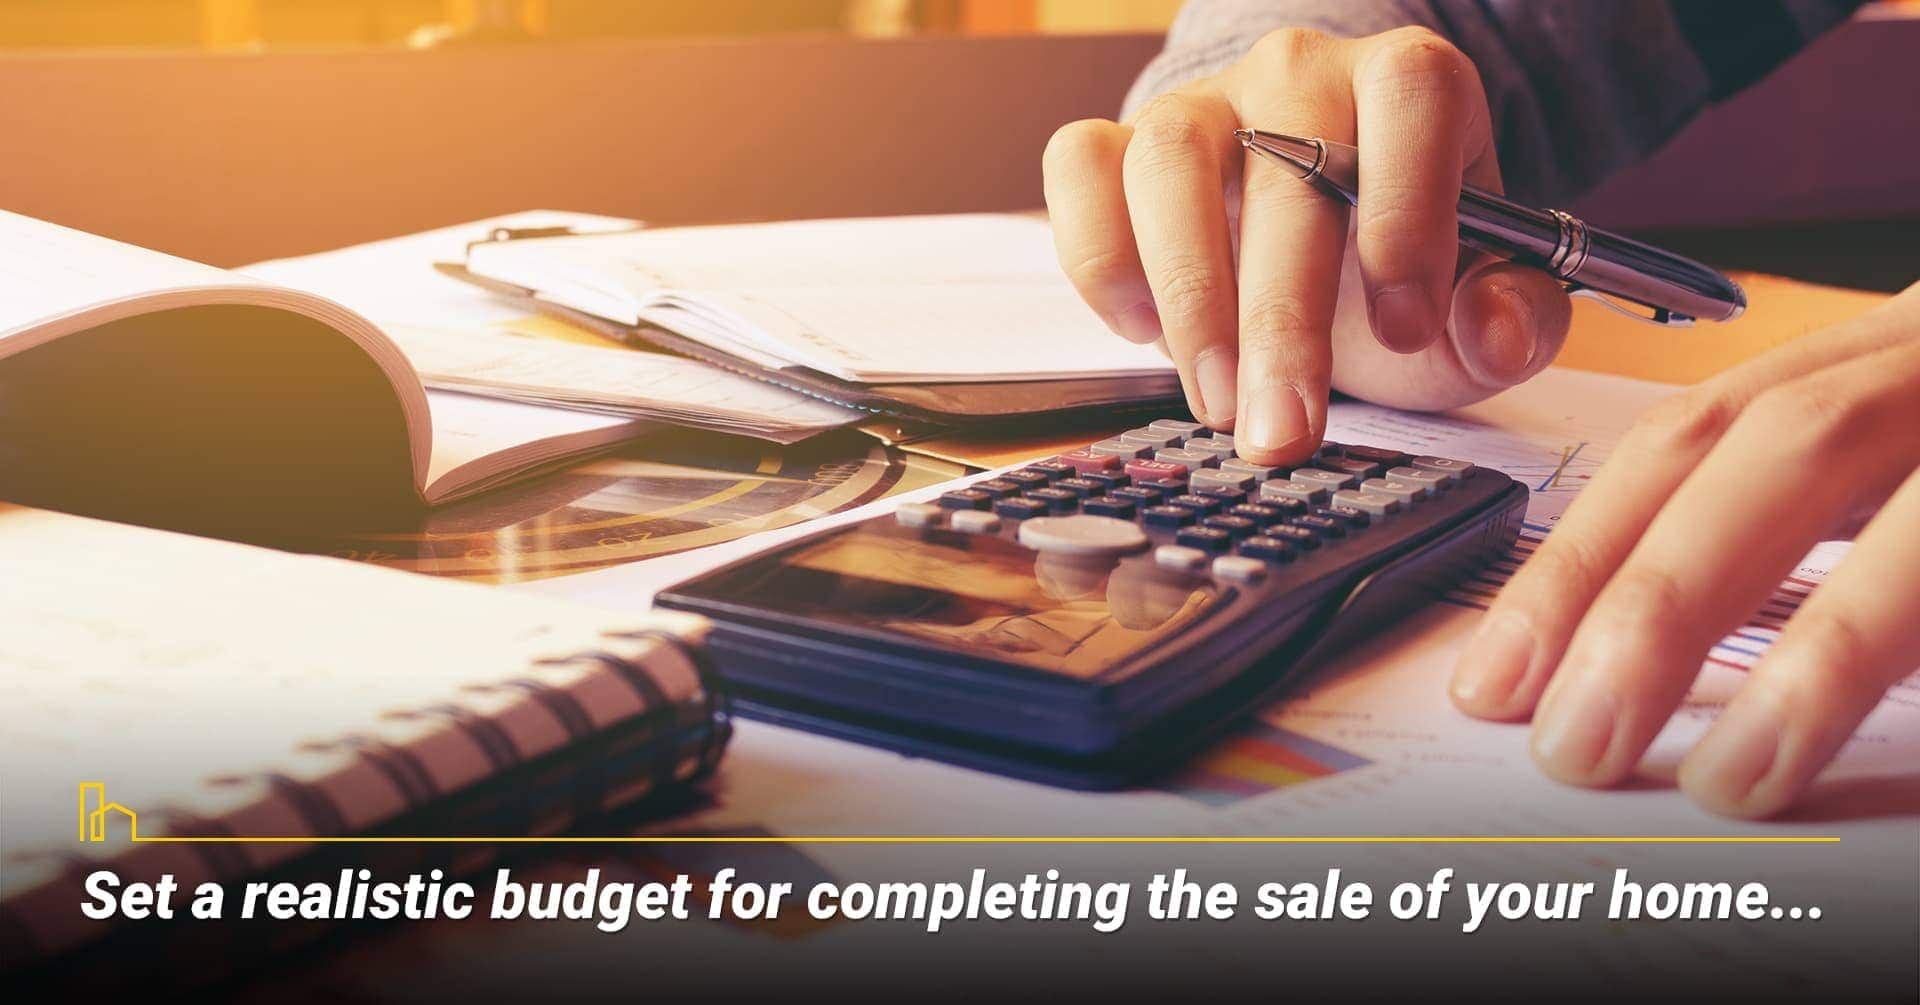 Set a realistic budget for completing the sale of your home...